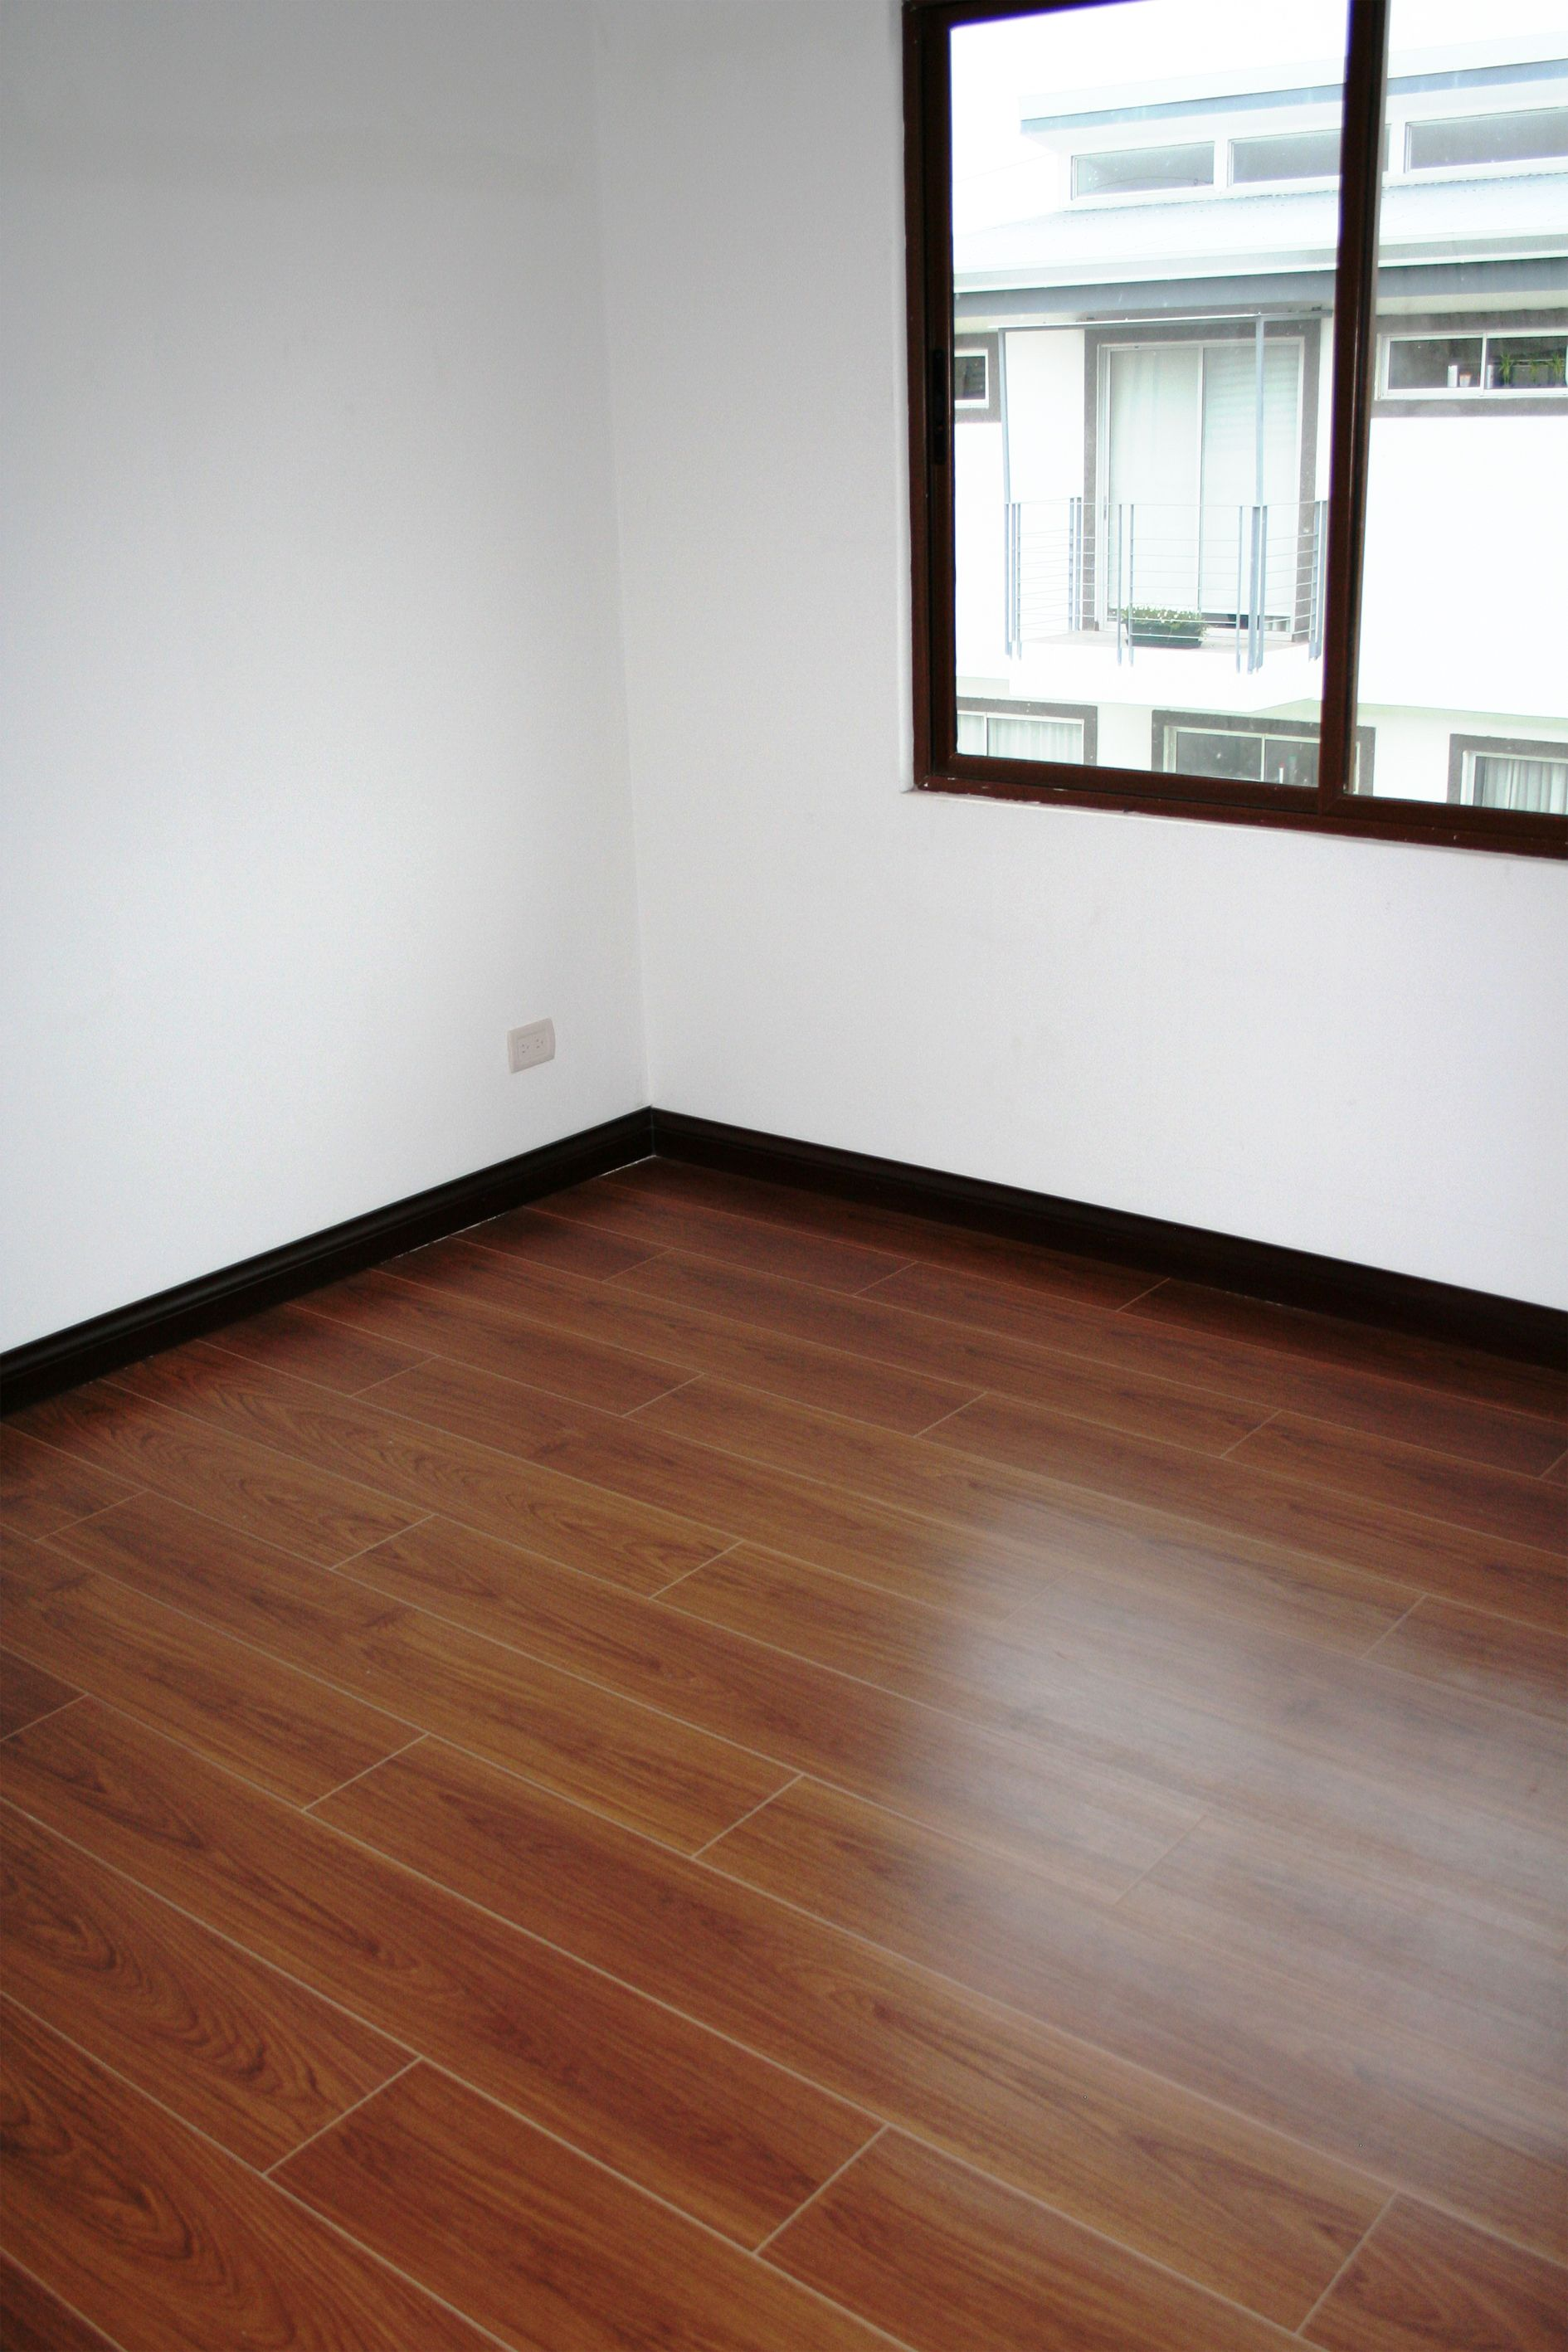 Piso laminado euro home proyectos que intentar for Piso laminado home depot